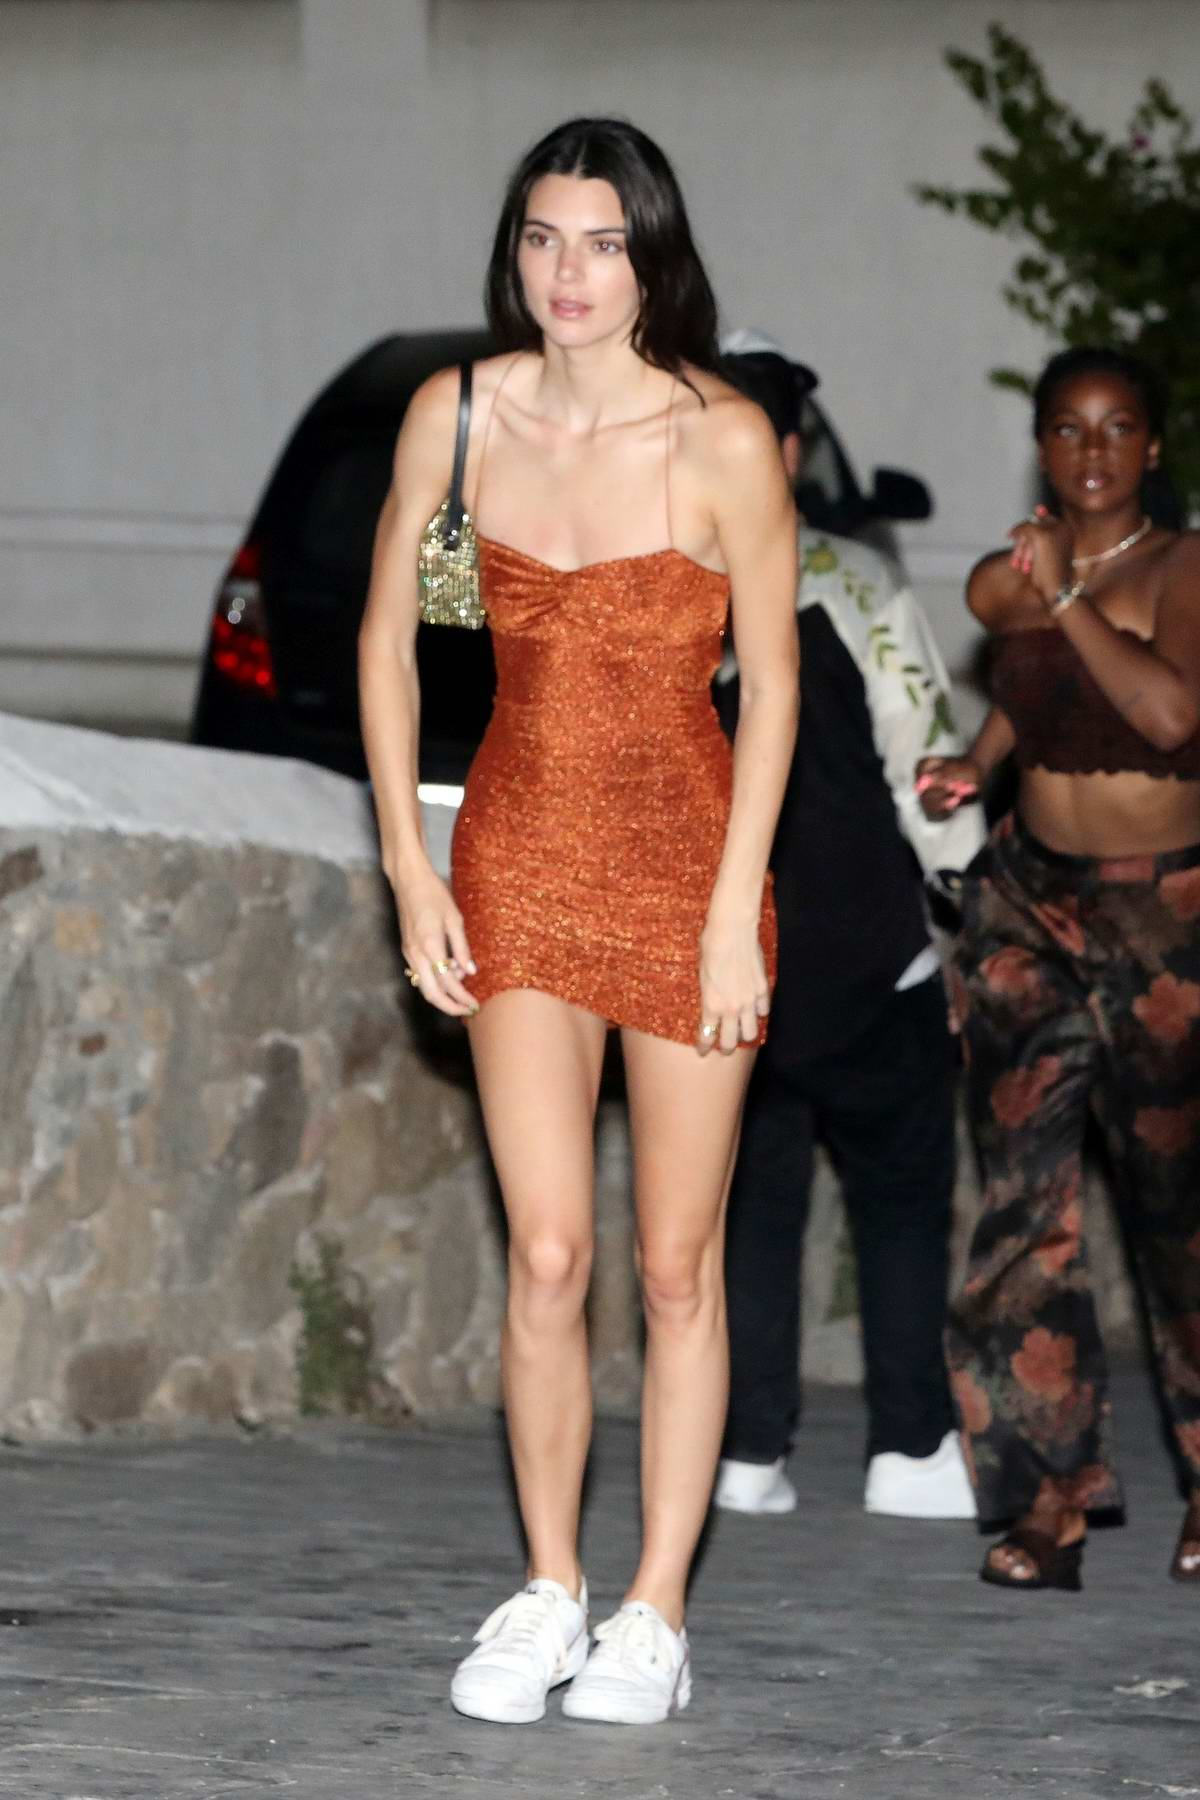 Kendall Jenner heads for a night out with friends at a beach nightclub in Mykonos, Greece